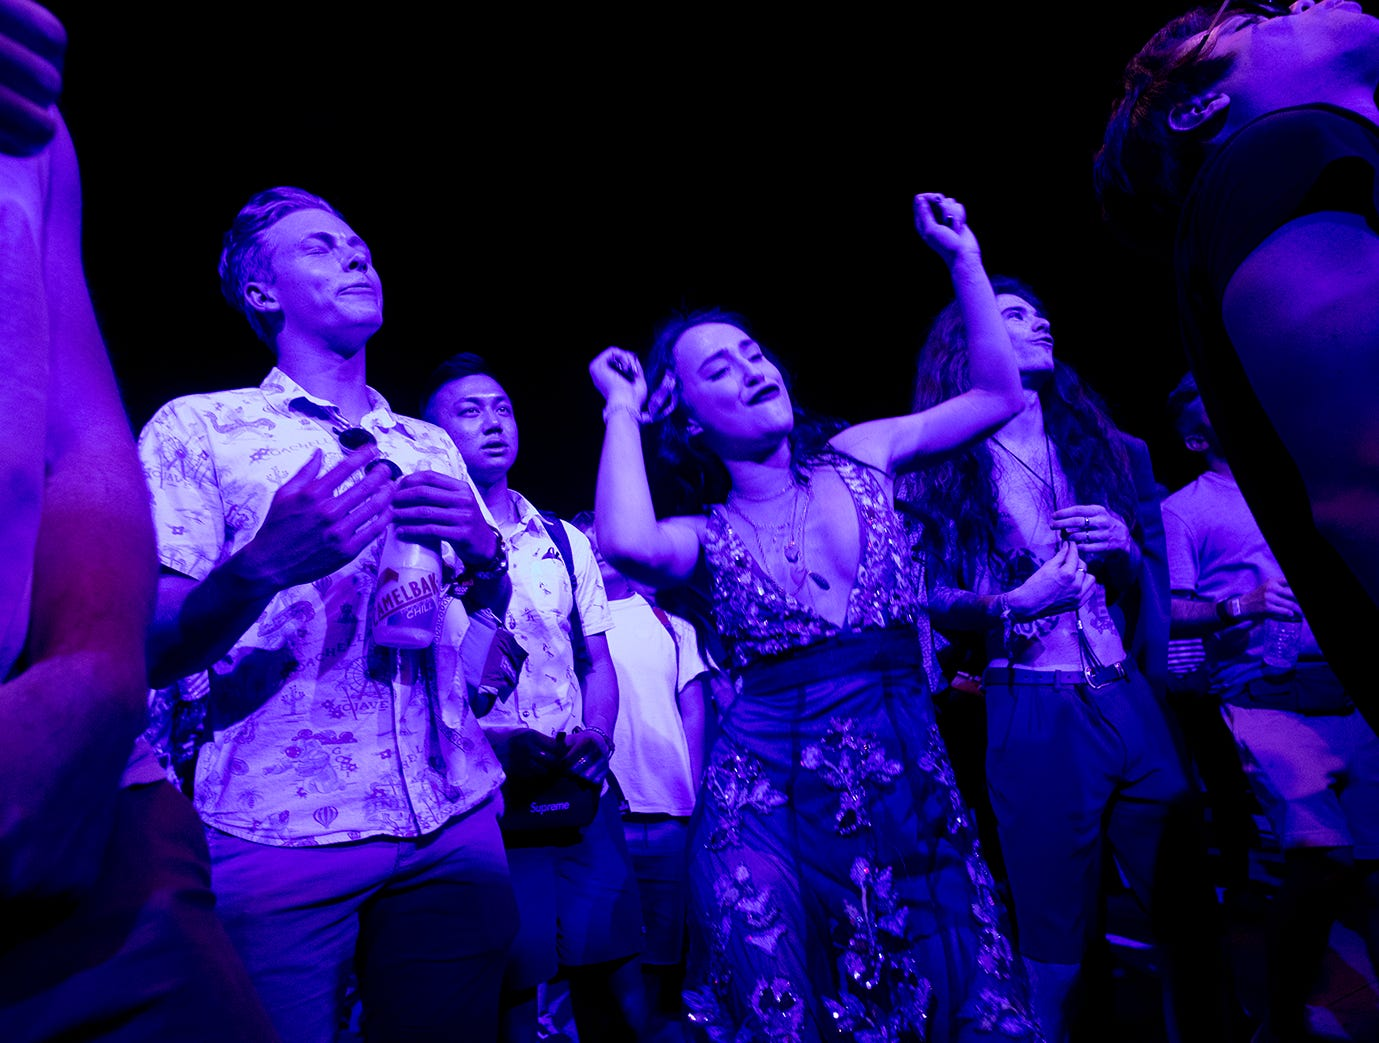 Fans of Easy Life enjoy their performance in the Sonora Tent during the 2019 Coachella Valley Music and Arts Festival held at the Empire Polo Club in Indio, California on April 14, 2019.